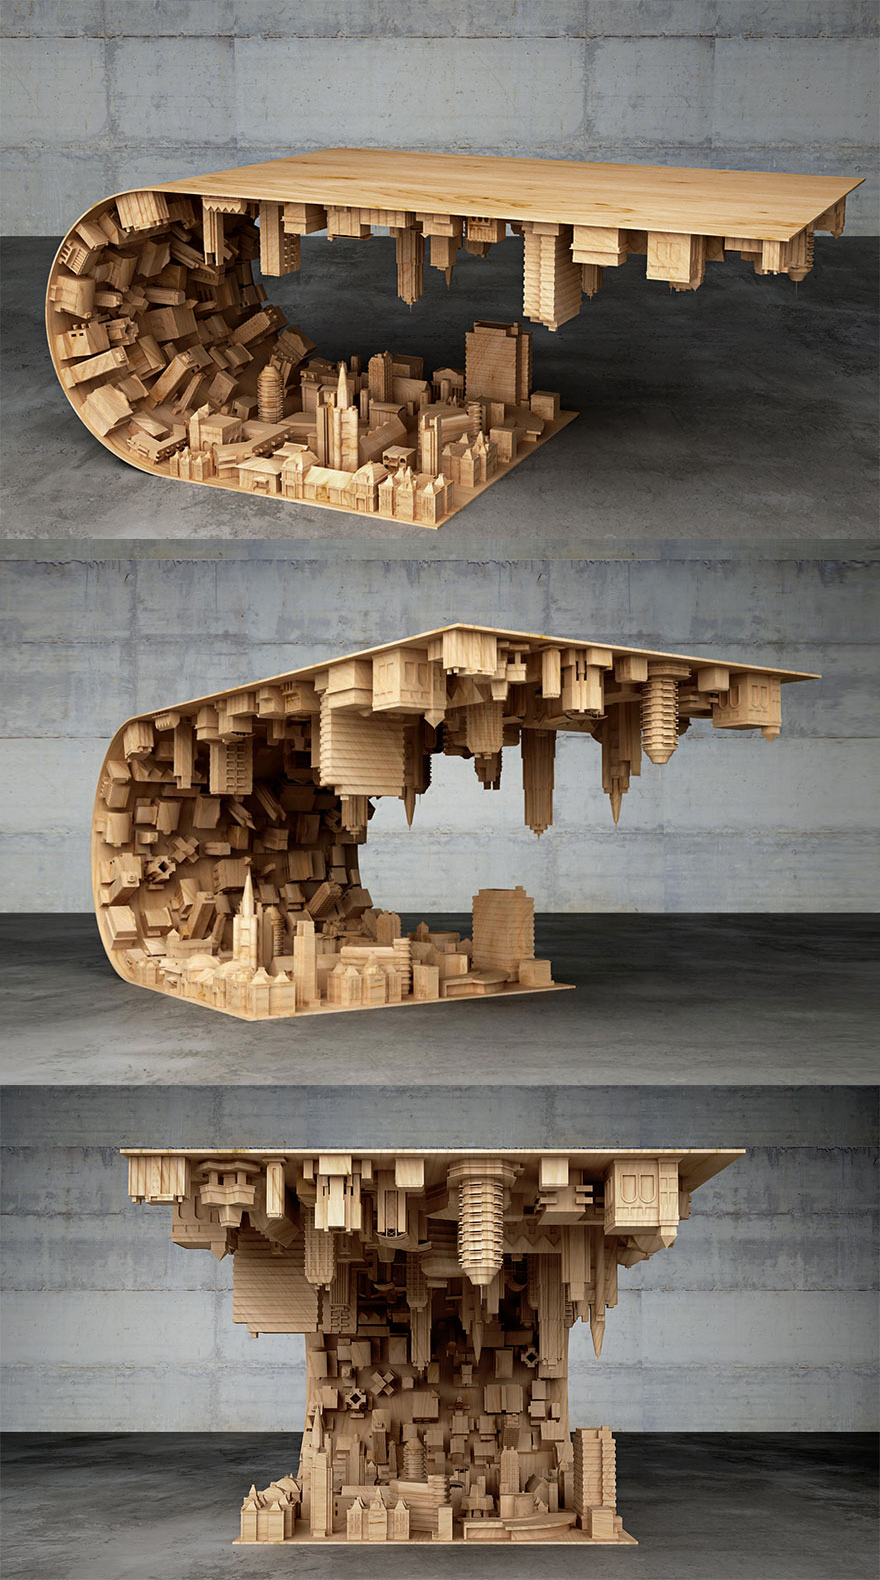 Couchtisch Panda Inception-inspired Coffee Table Bends A City In Your